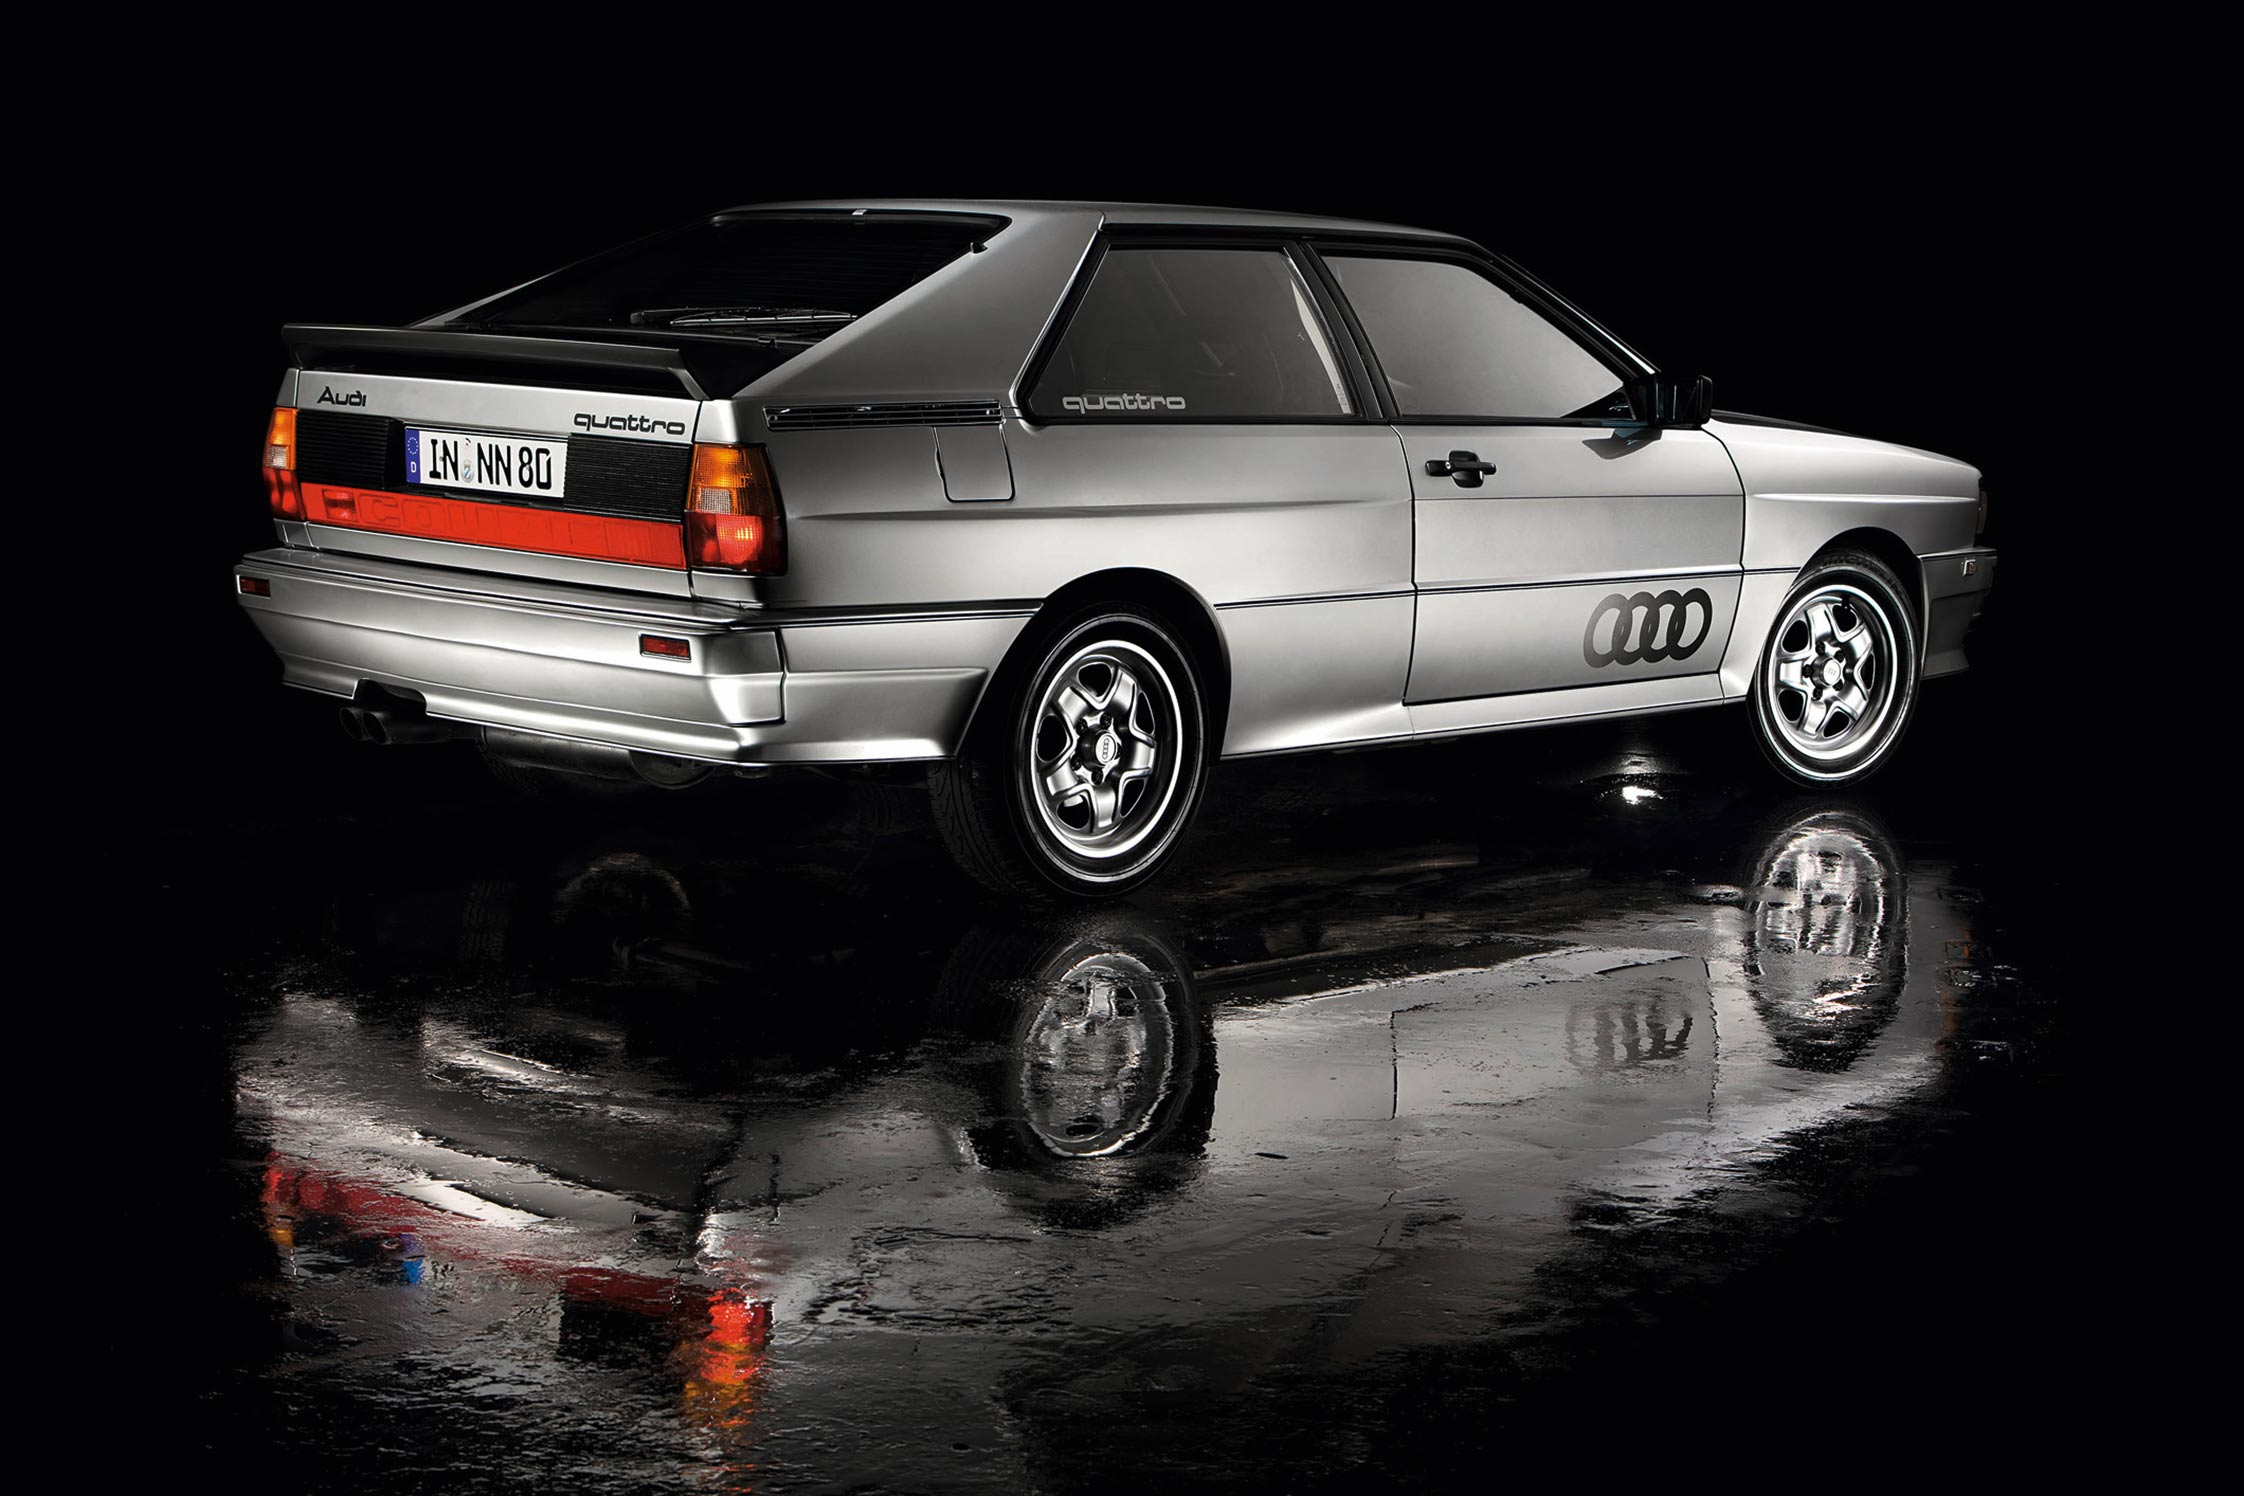 Audi Urquattro Innenausstattung 1000 43 Images About Audi Quattro On Pinterest Audi